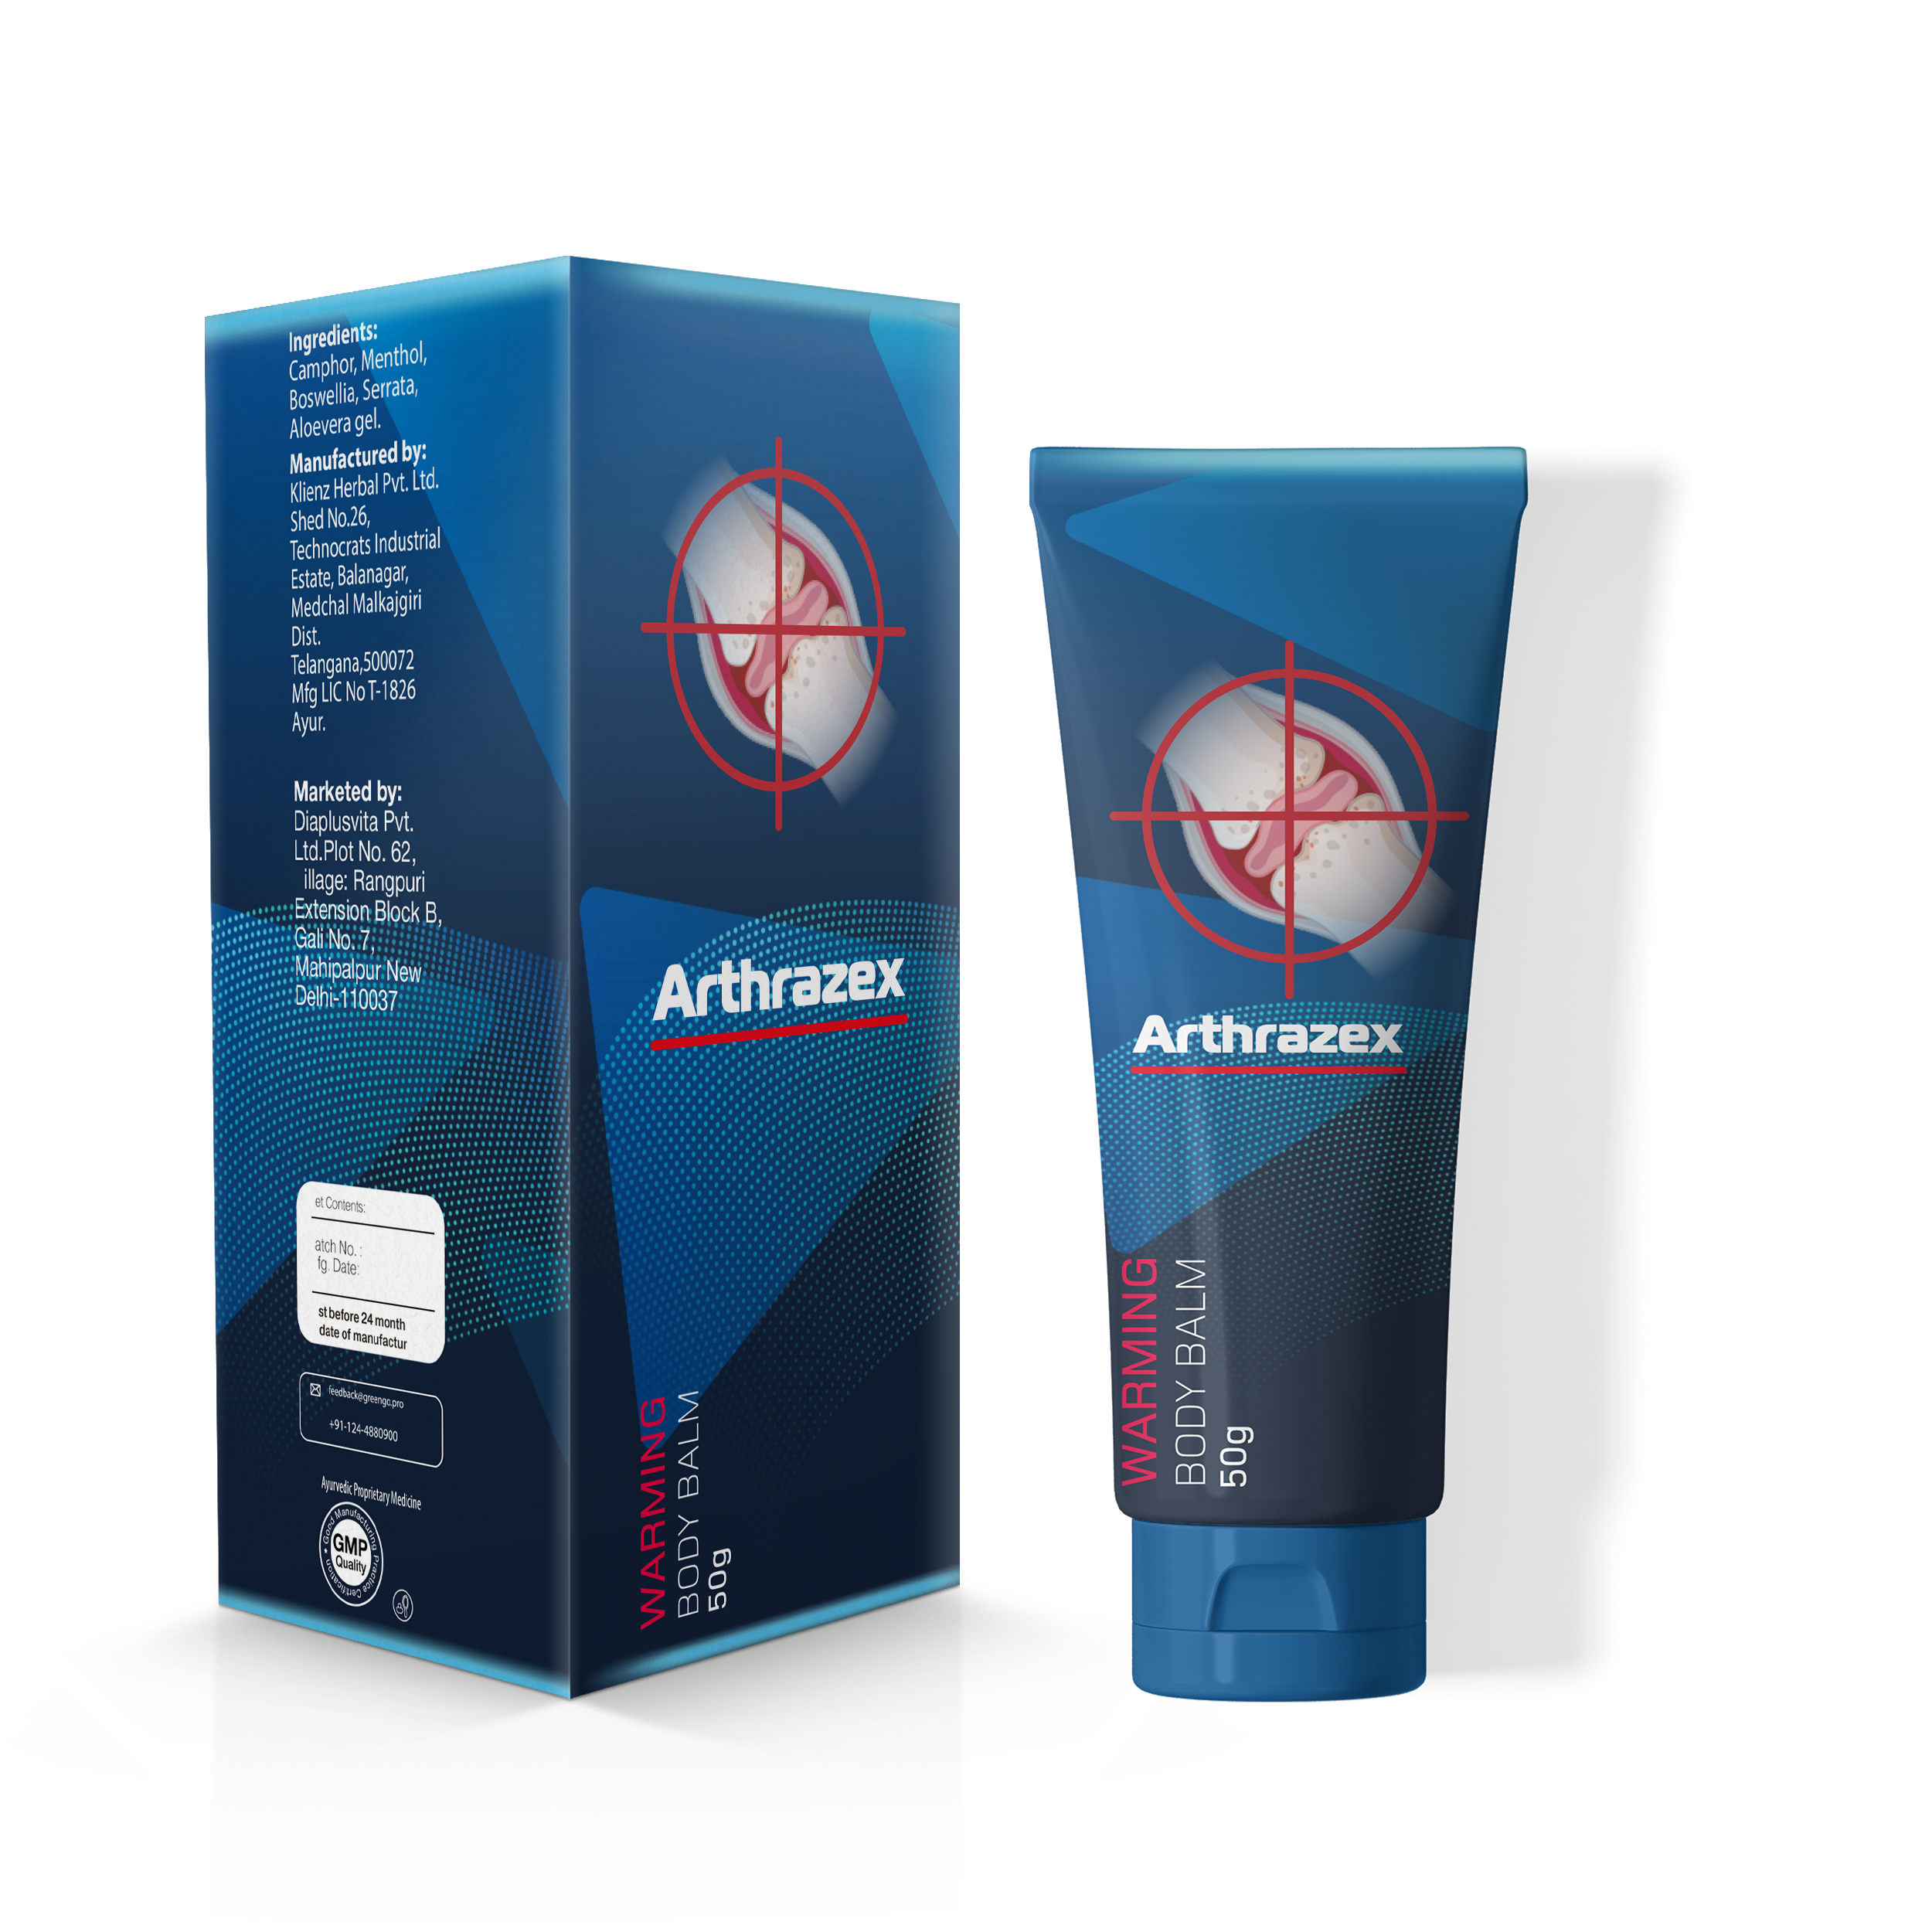 Arthrazex balm - ingredients, opinions, forum, price, where to buy, lazada - Philippines